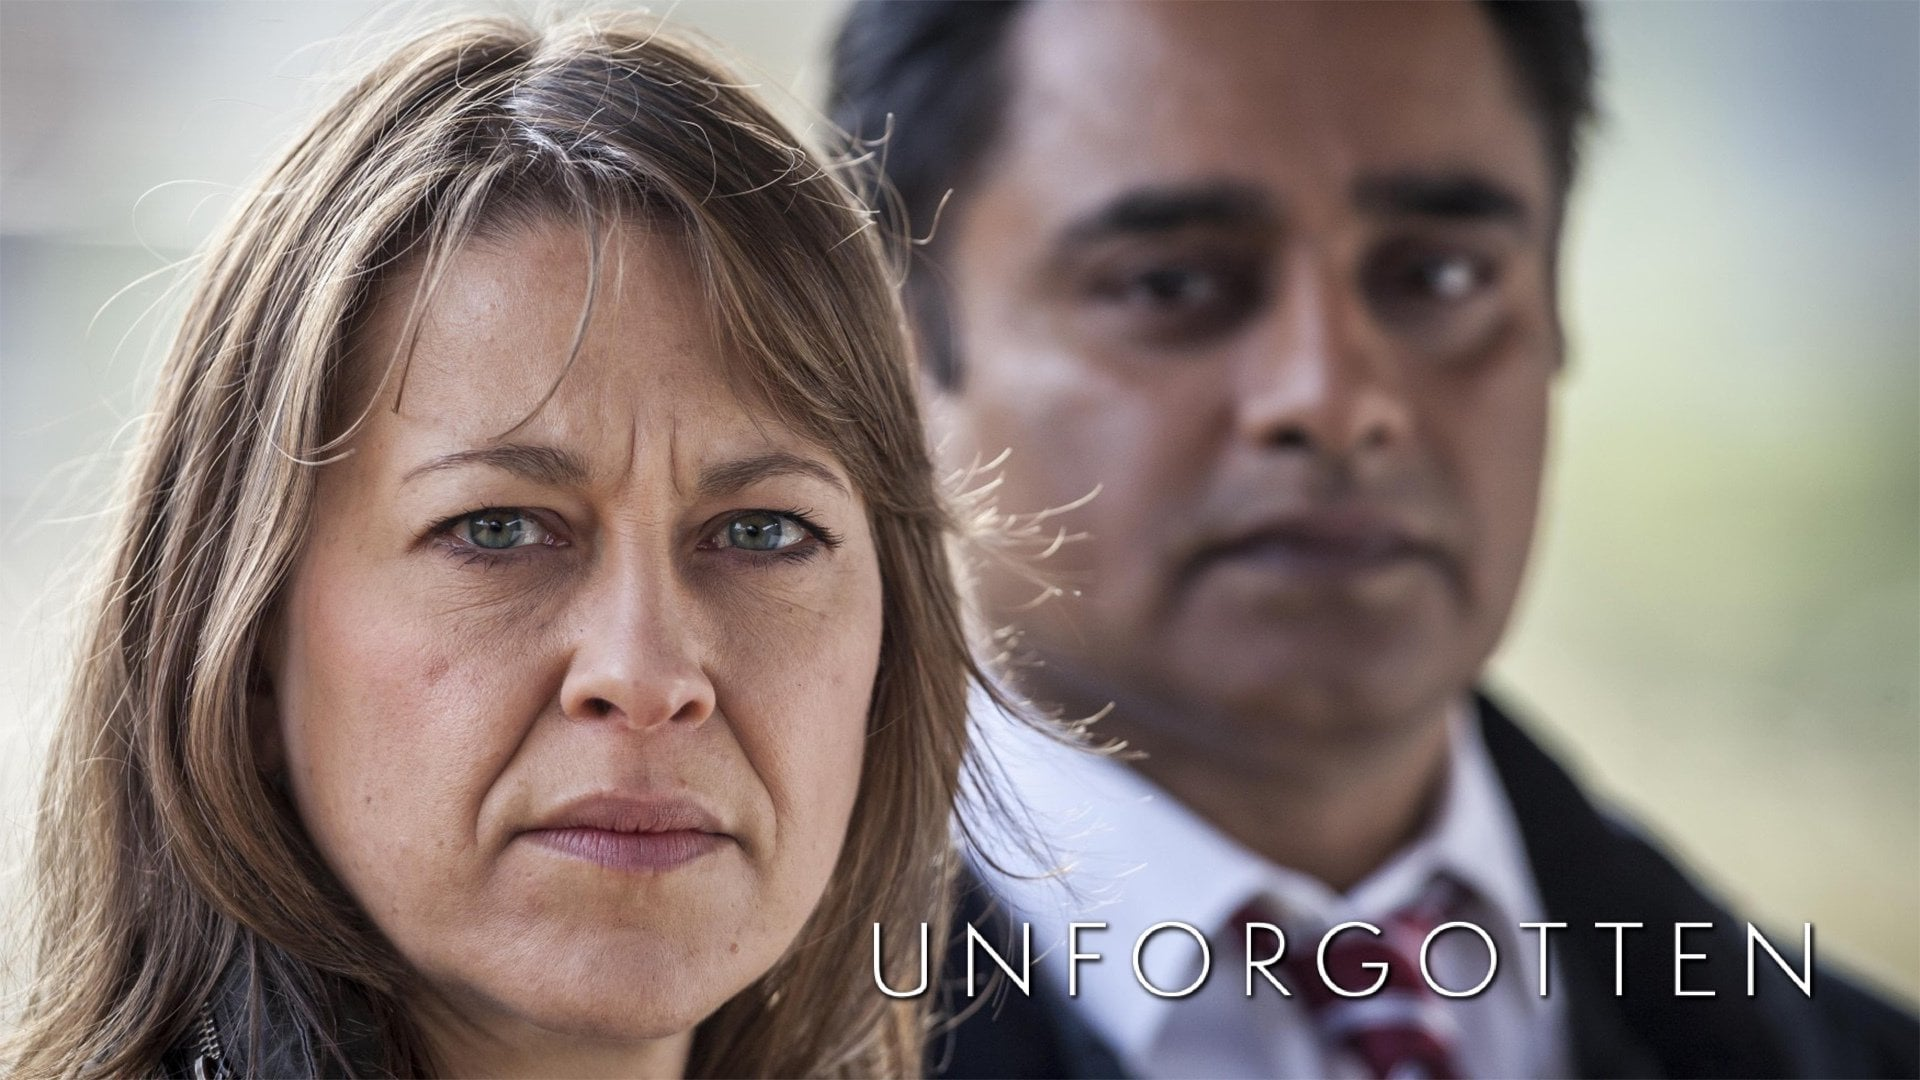 Unforgotten will have a fifth season